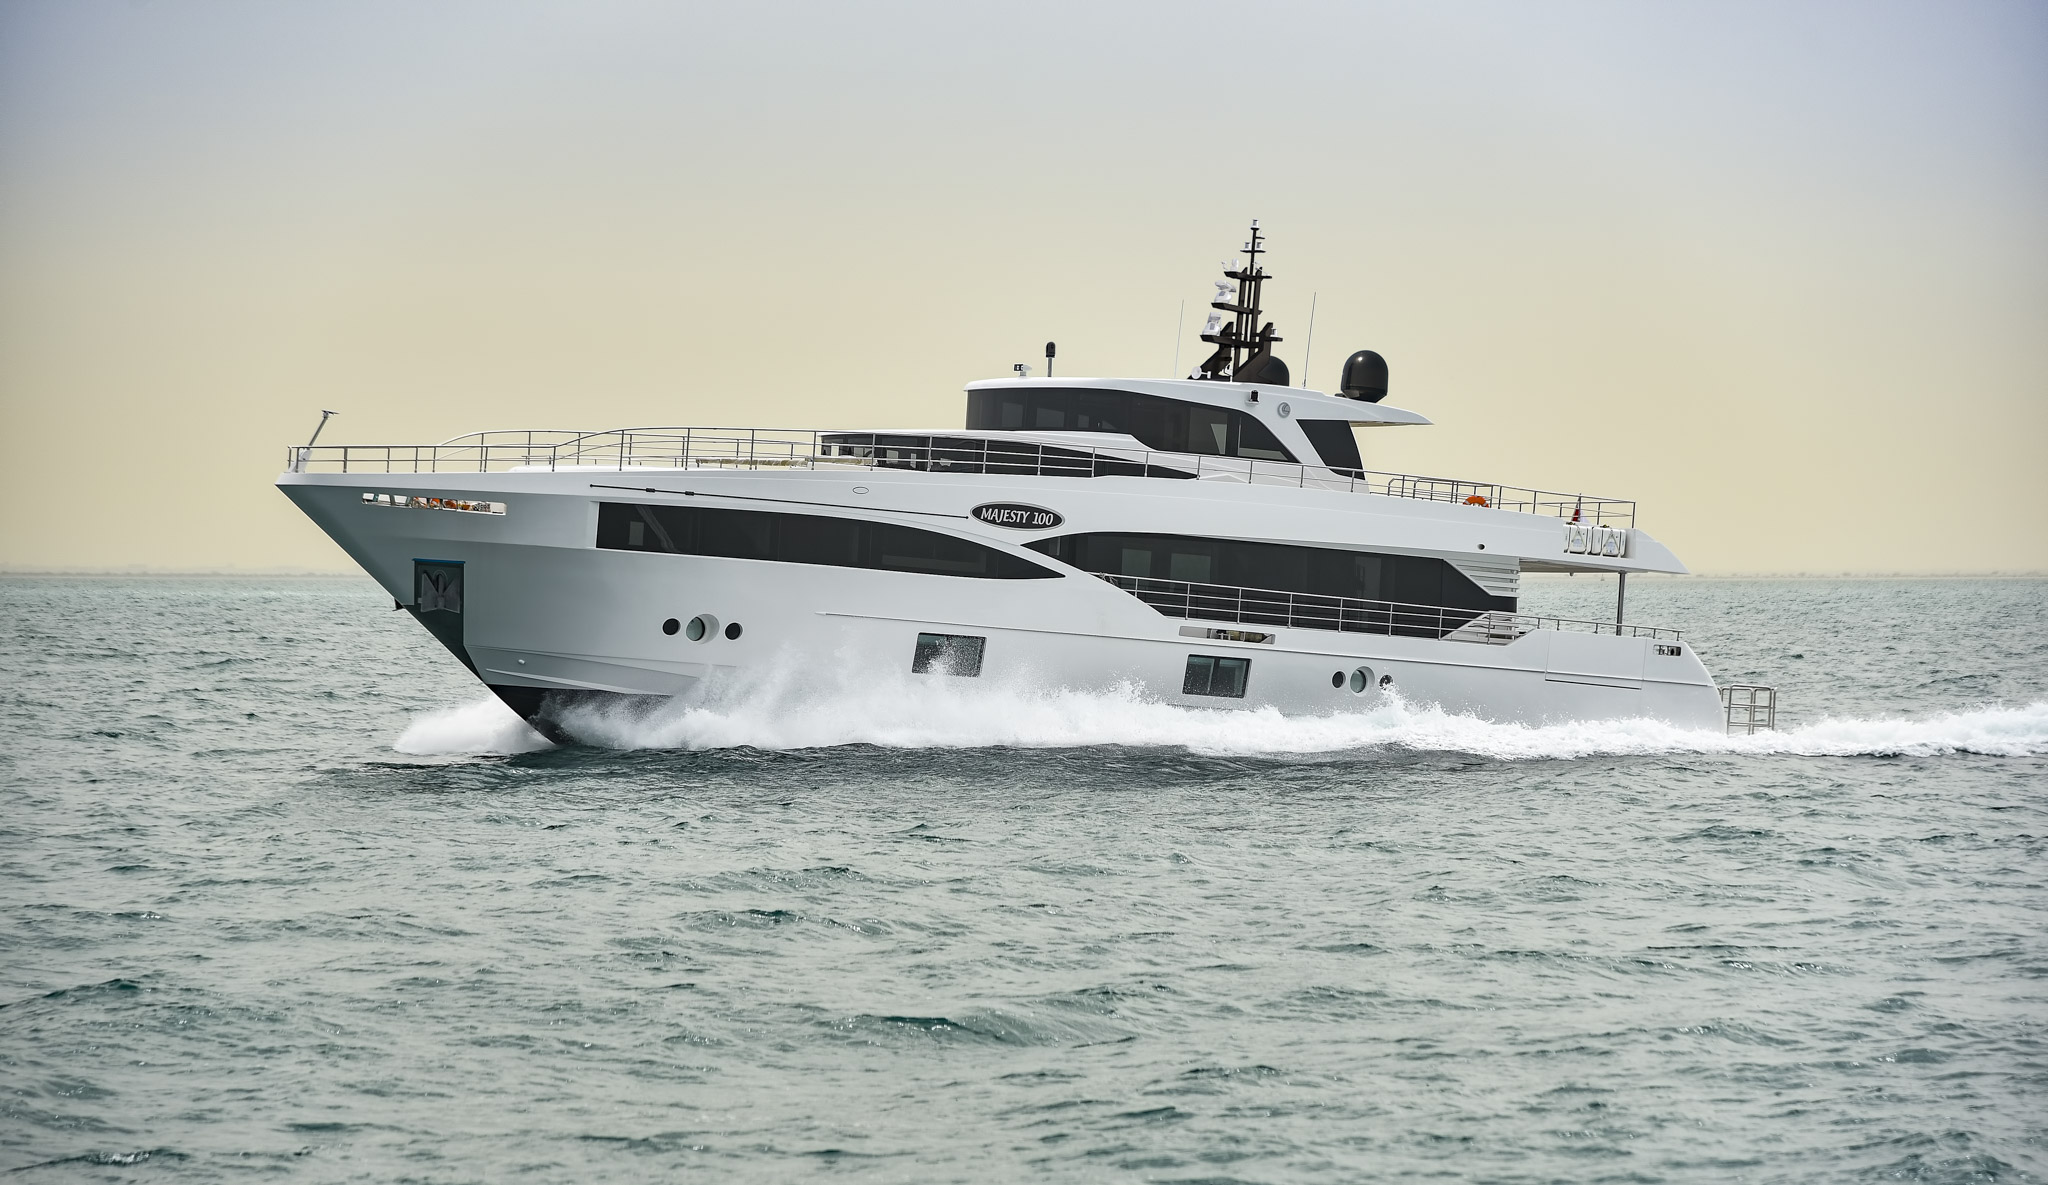 Gulf craft launches first majesty 100 yacht in dubai for Gulf craft boats for sale